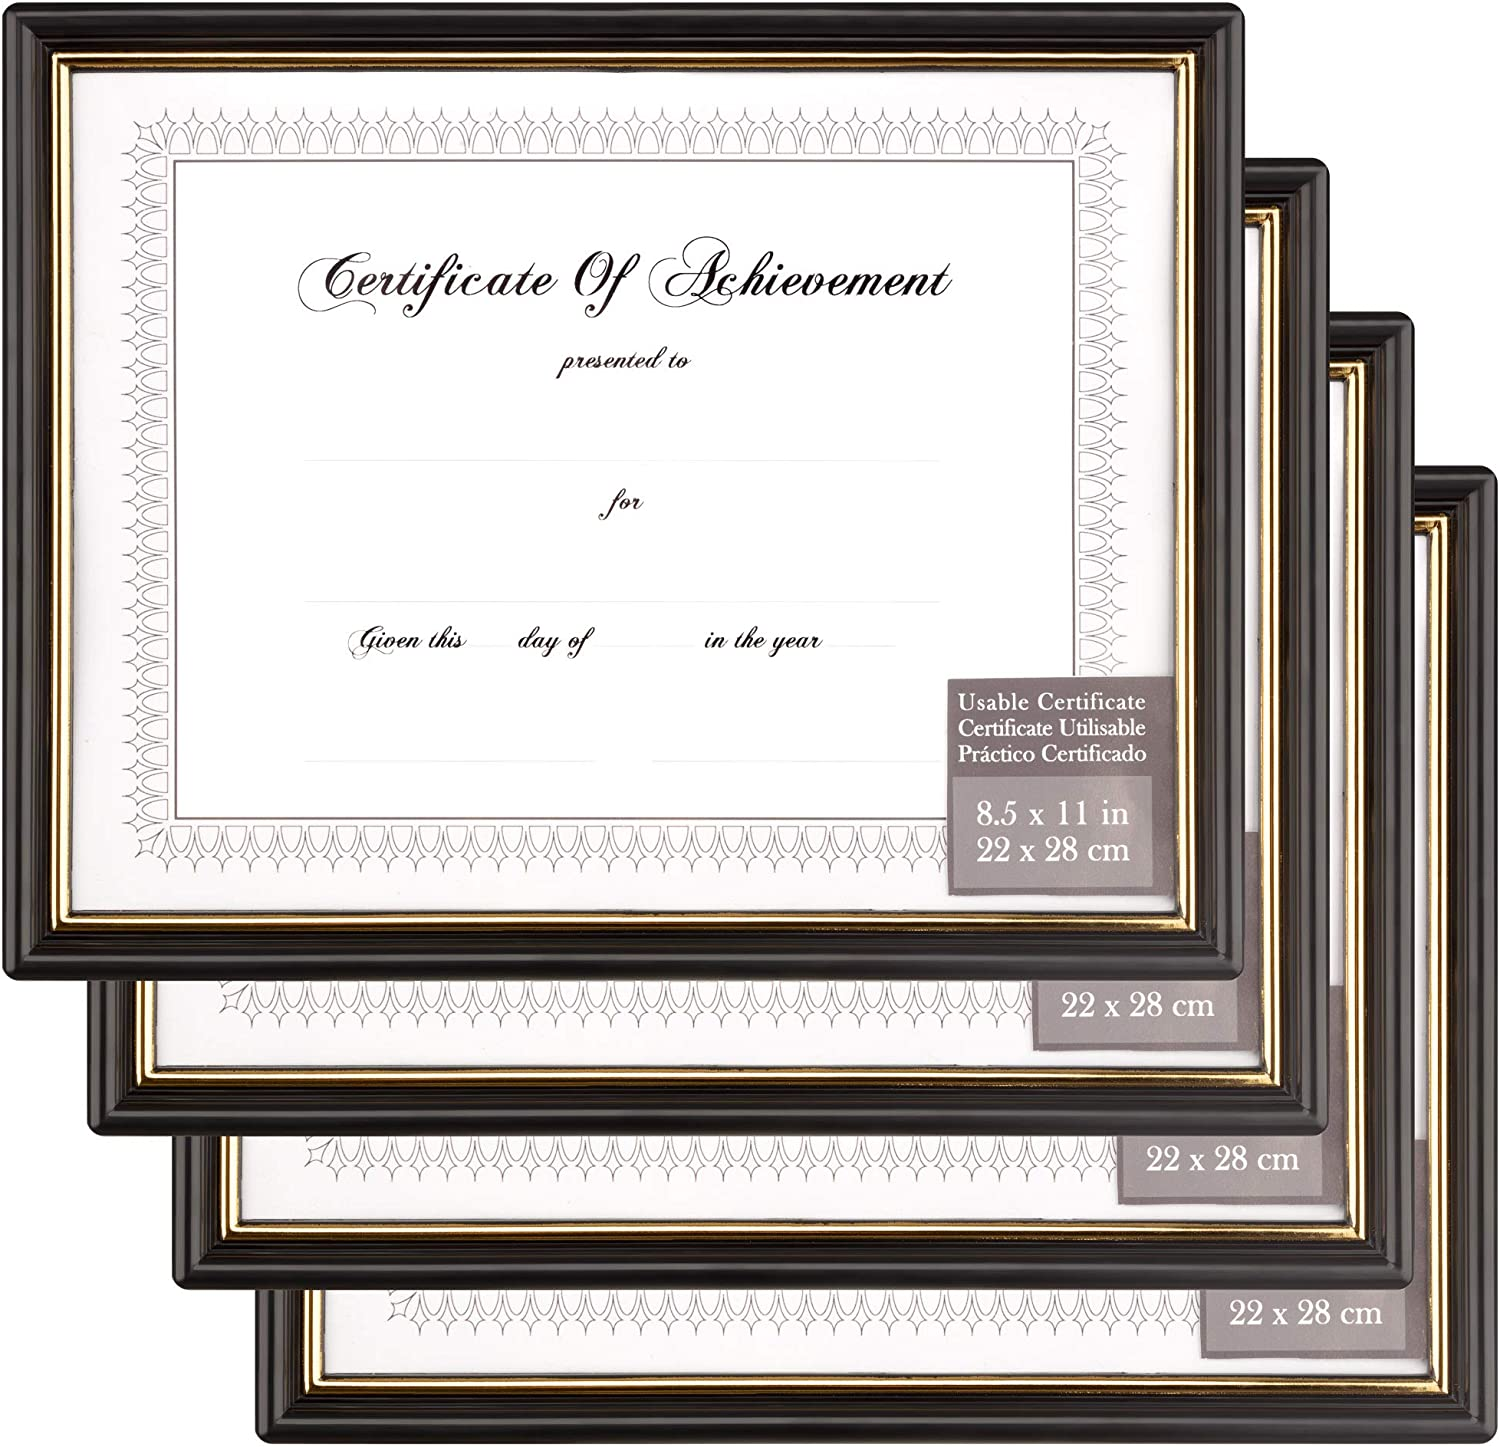 Gallery Solutions 11x14 Black Satin Document Frame with Double White Mat for 8.5x11 Document or Image